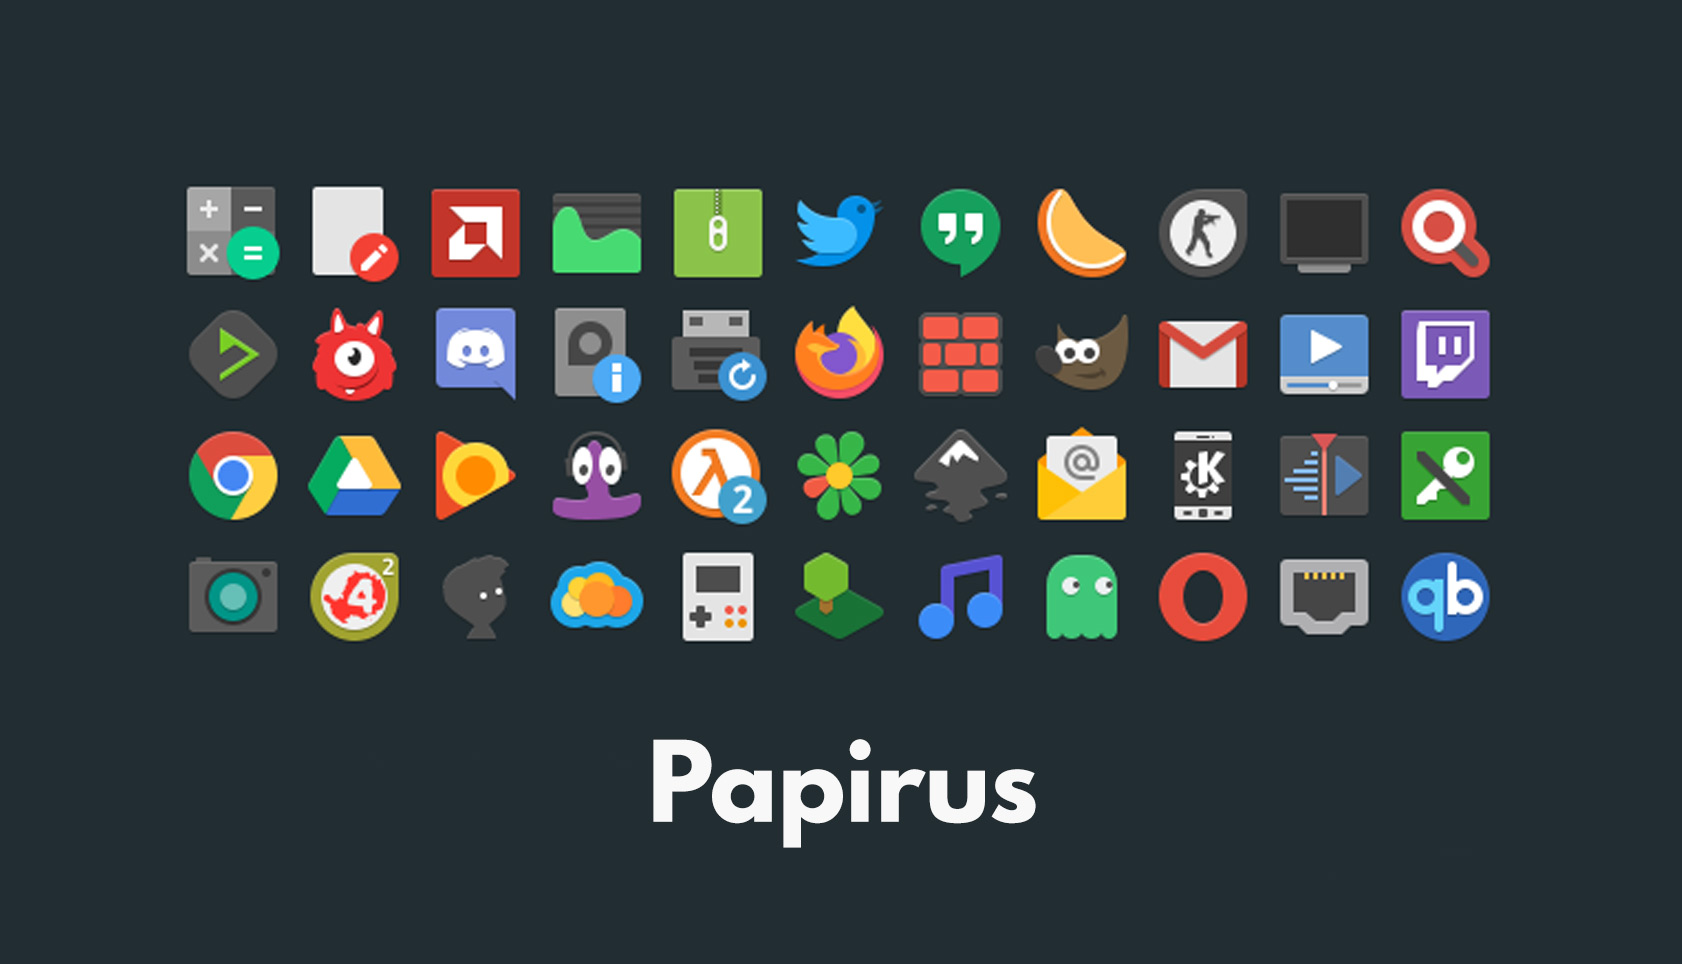 papirus icon theme